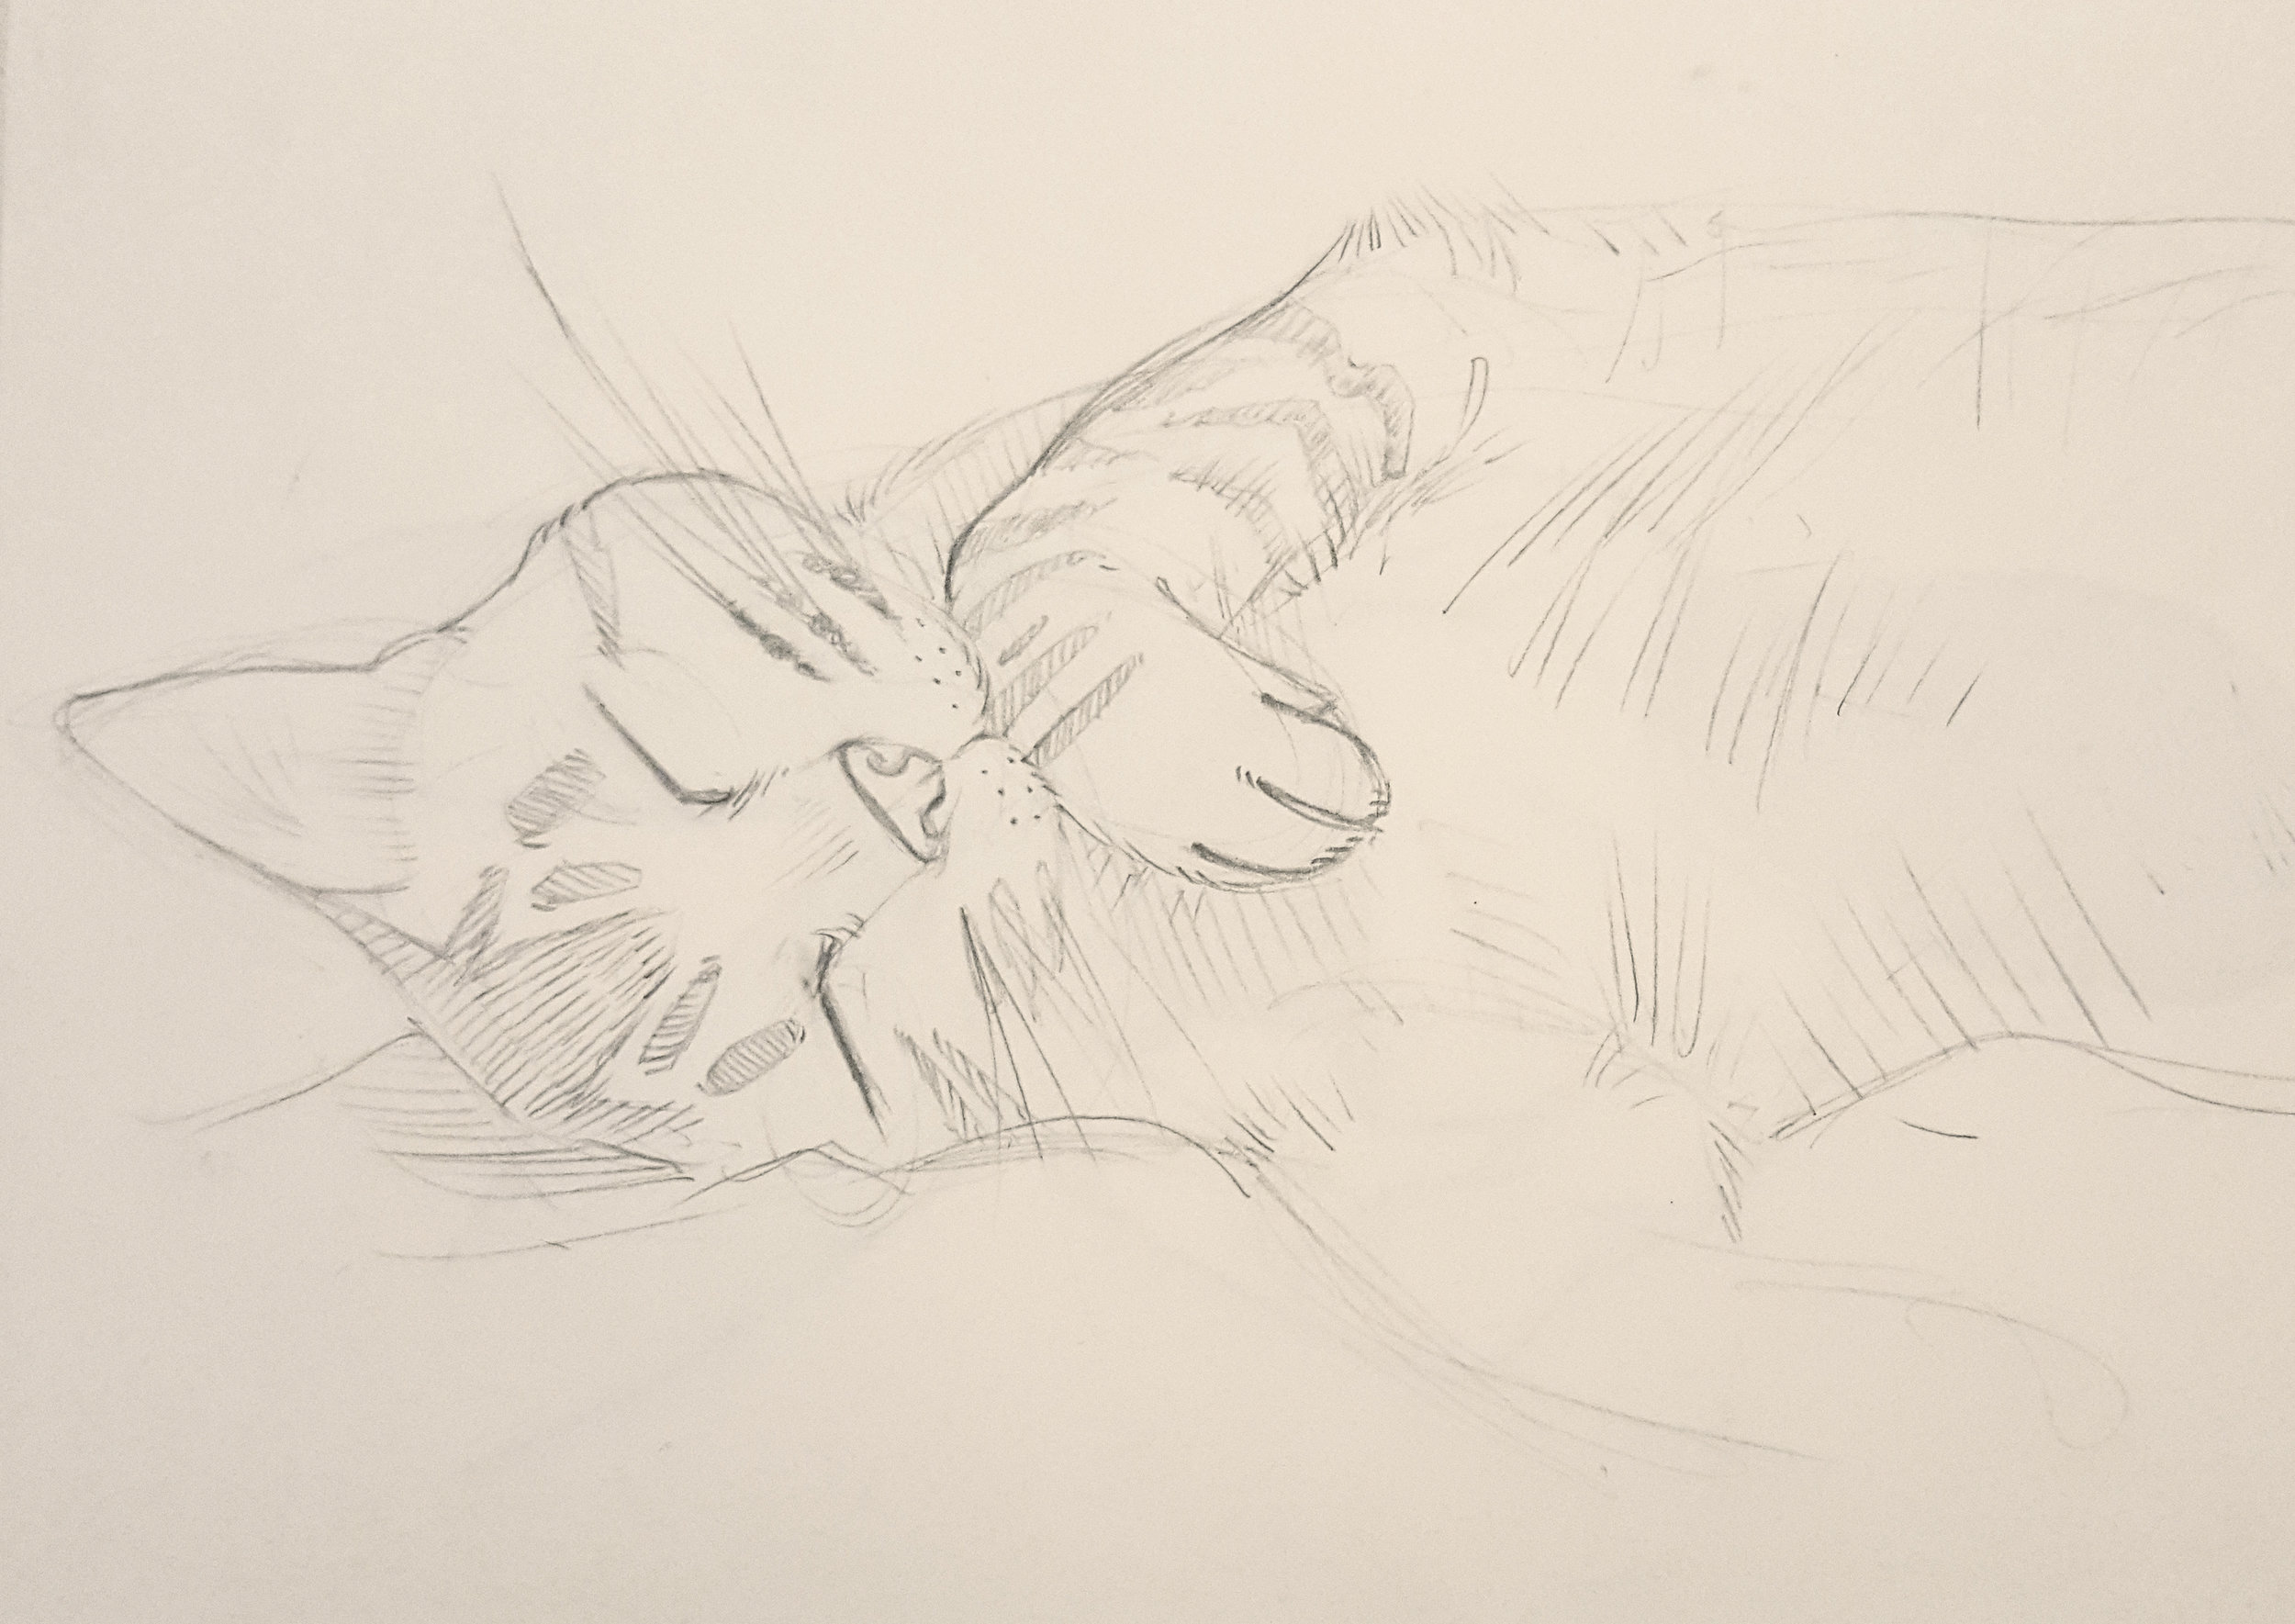 Copy of Sleeping Cat sketch